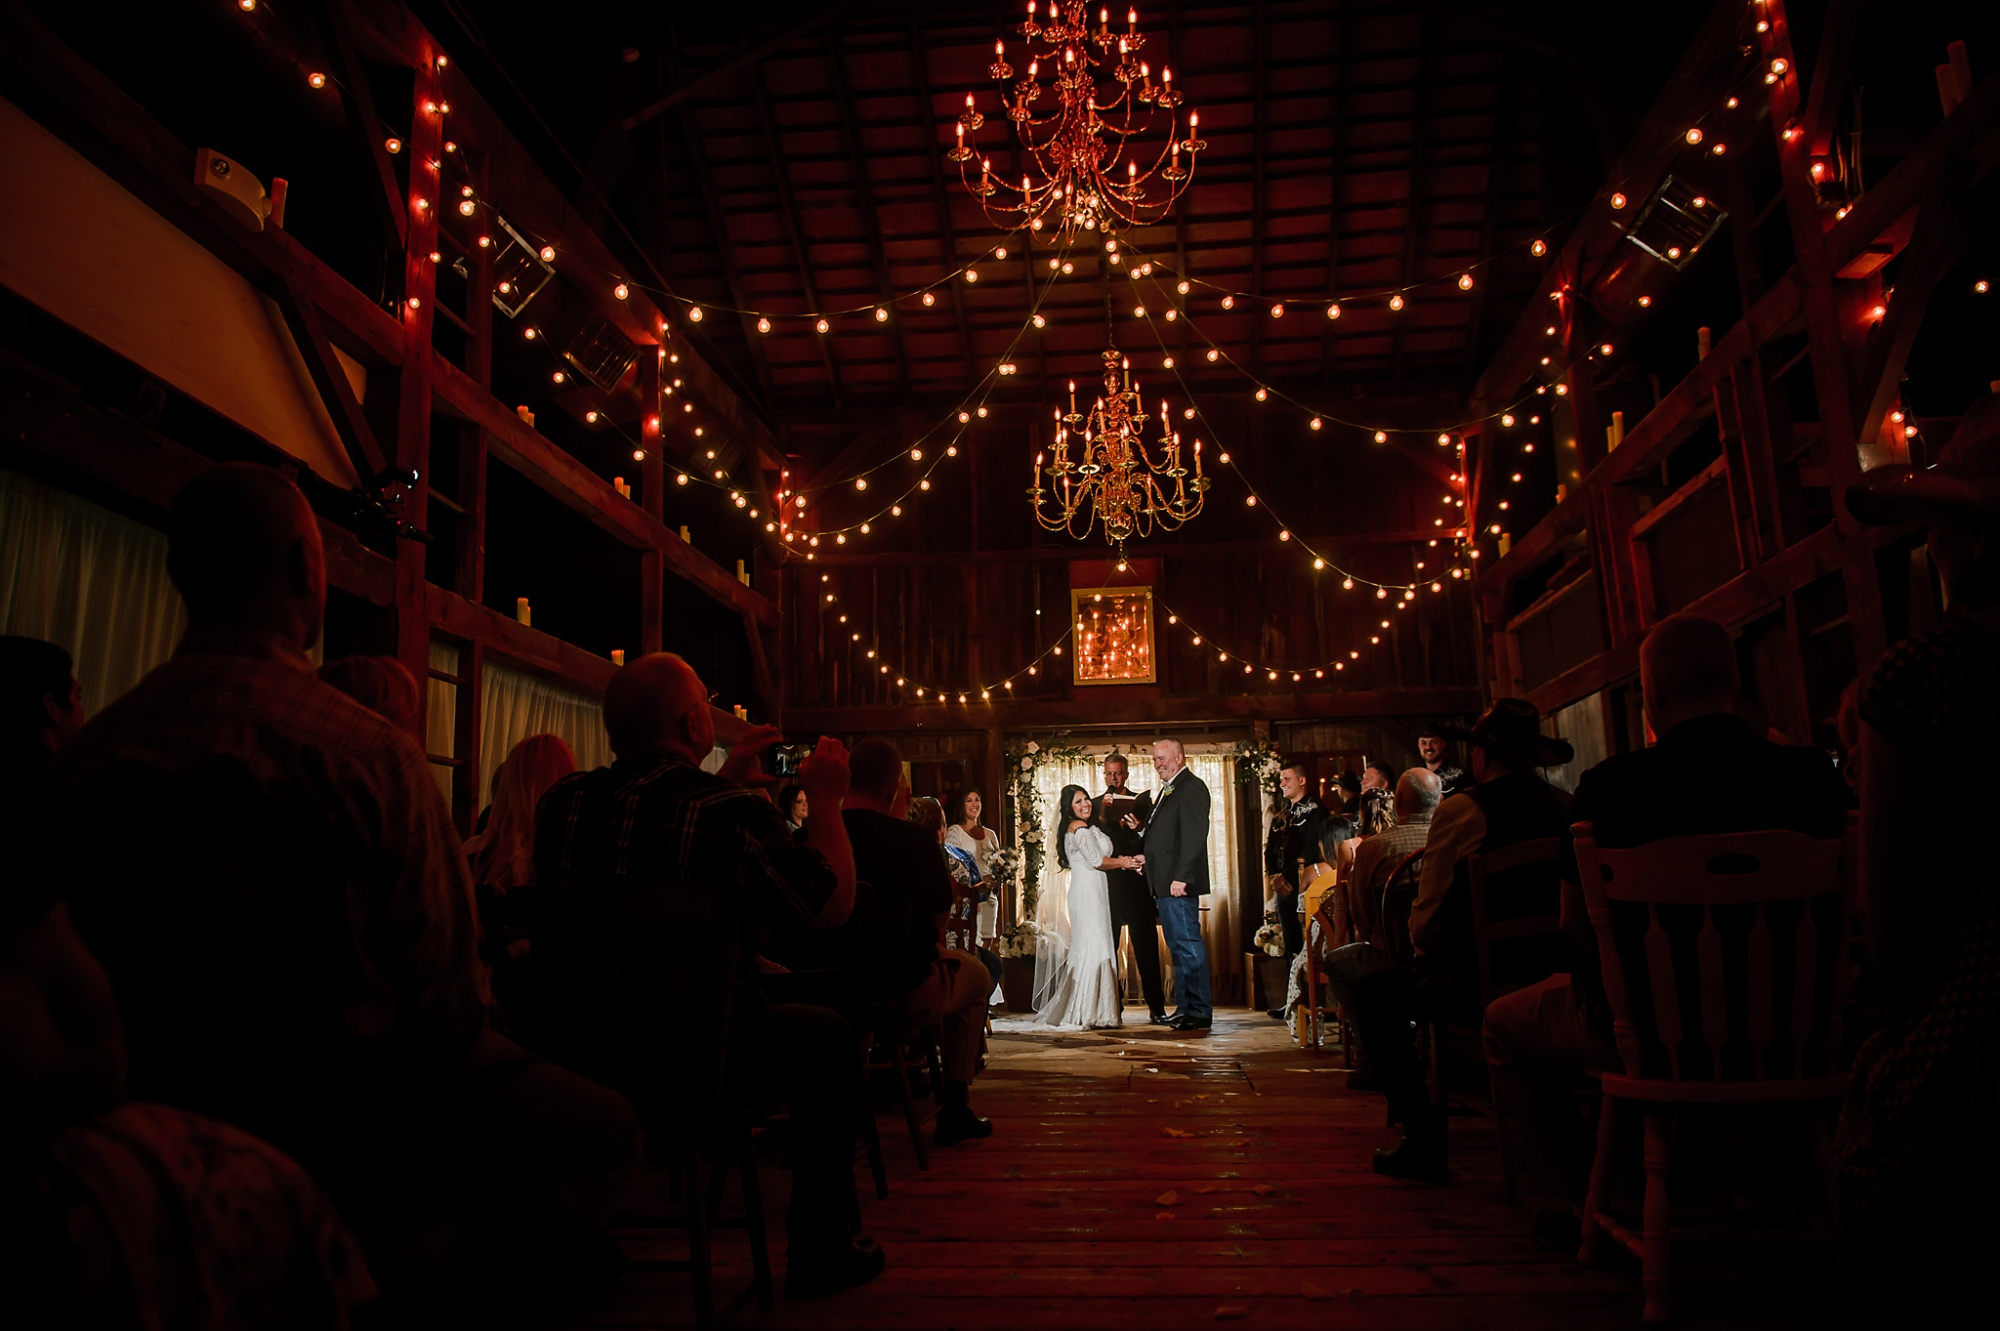 Jacks-Barn-Wedding-Janine-Collette-Photography41